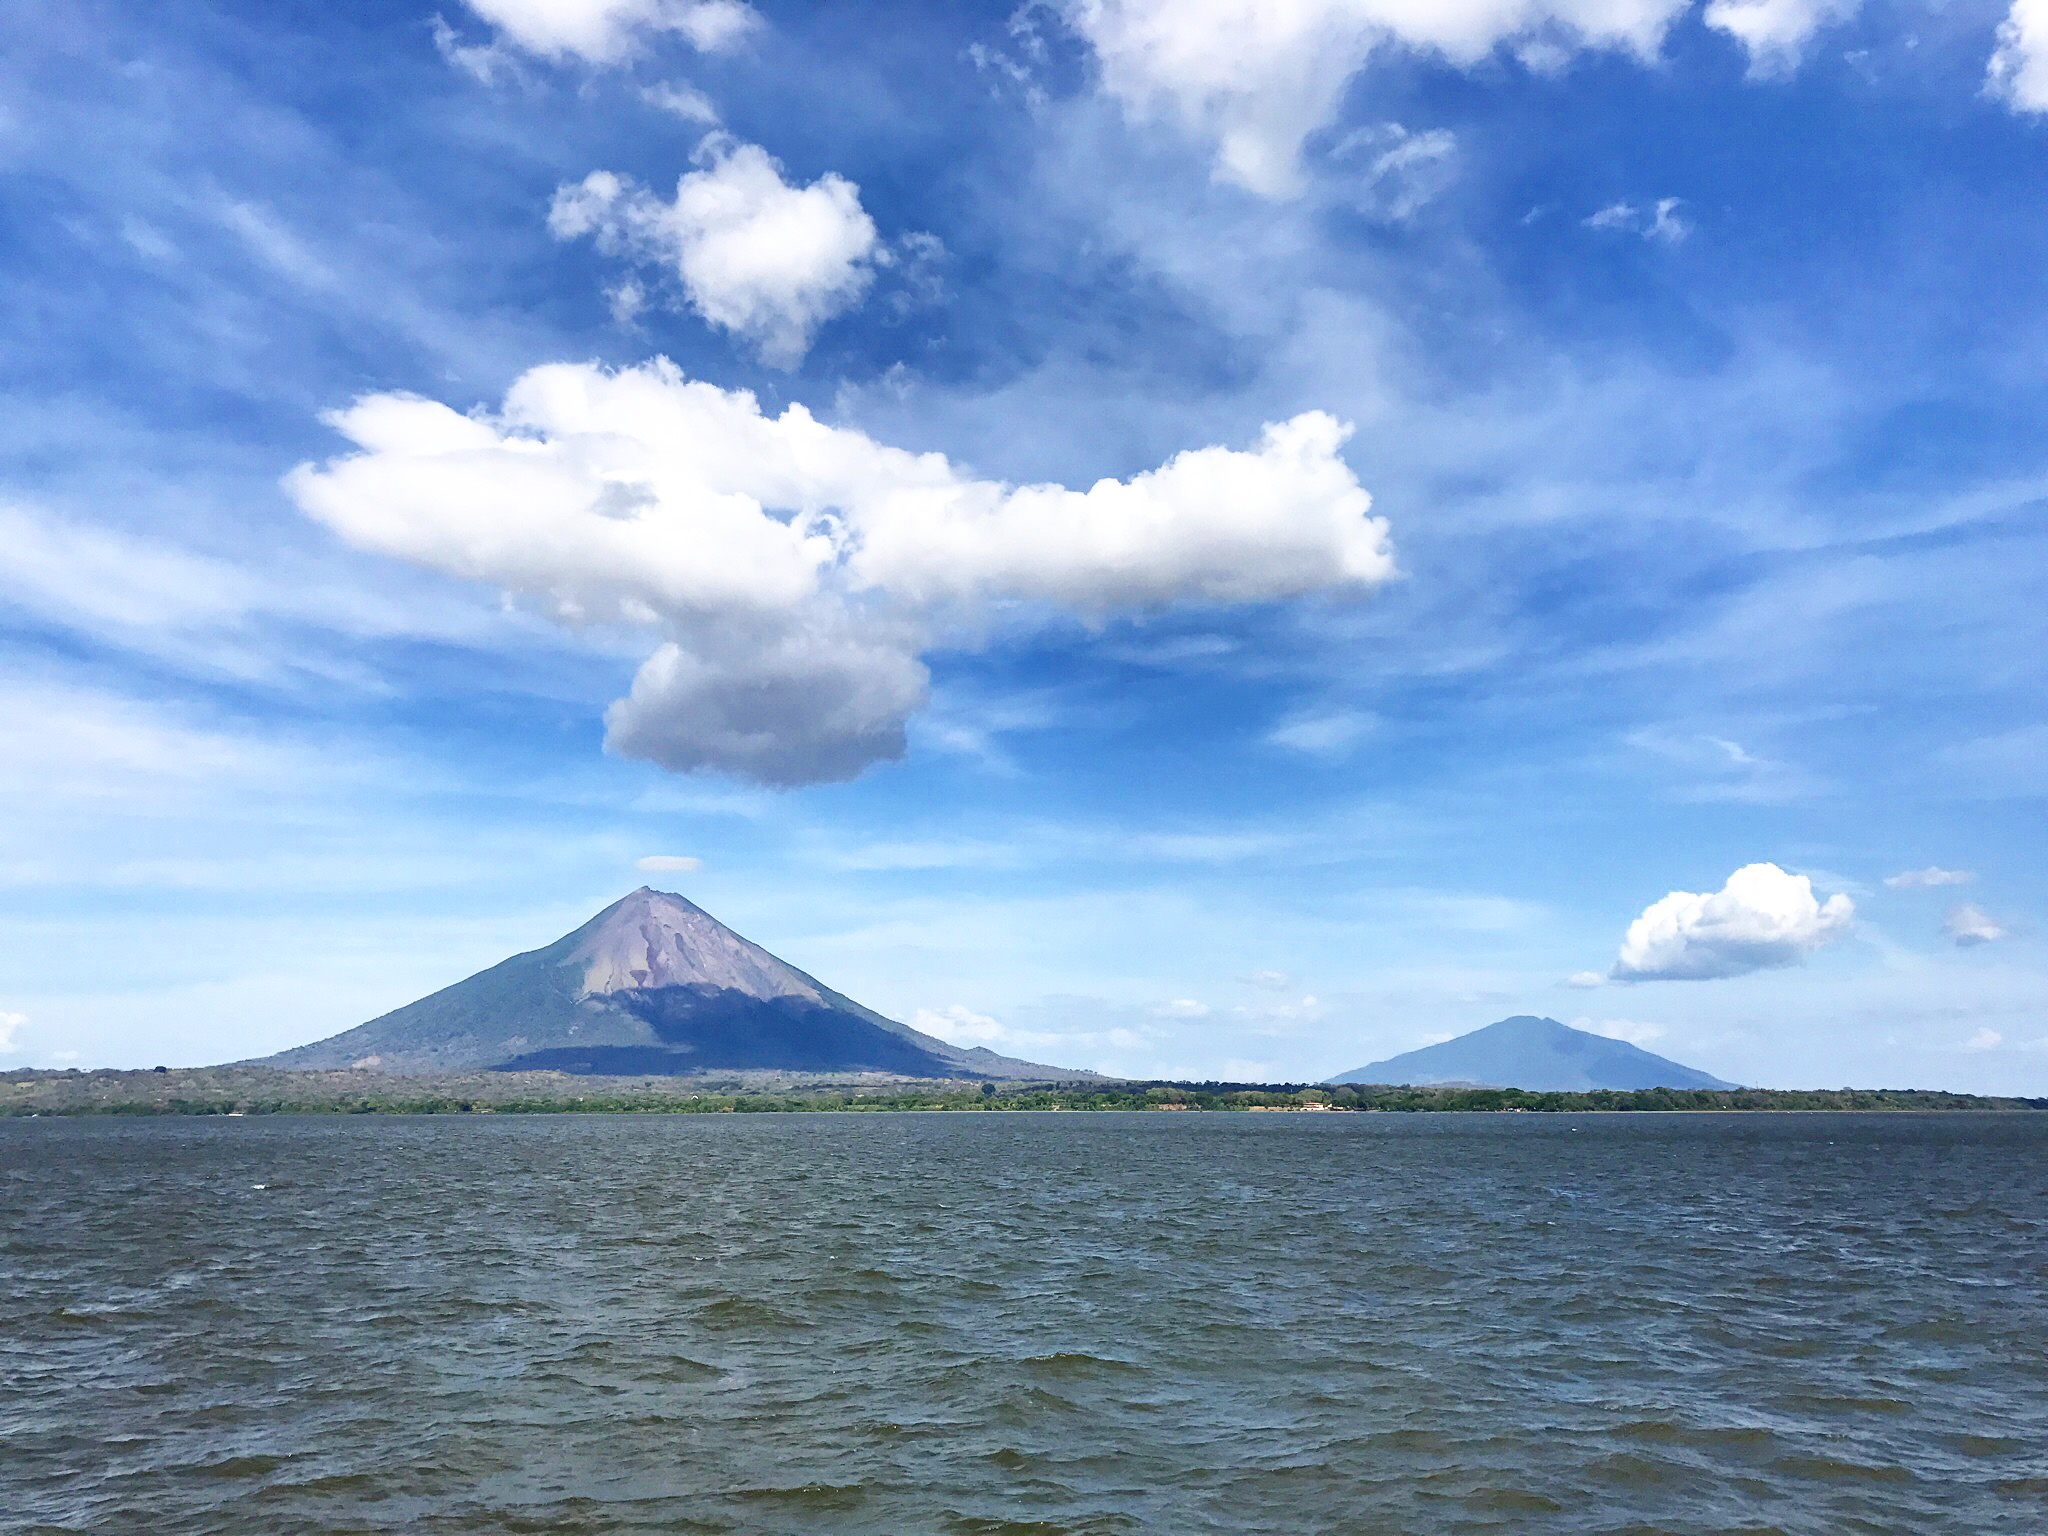 Isla de Ometepe from the mainland